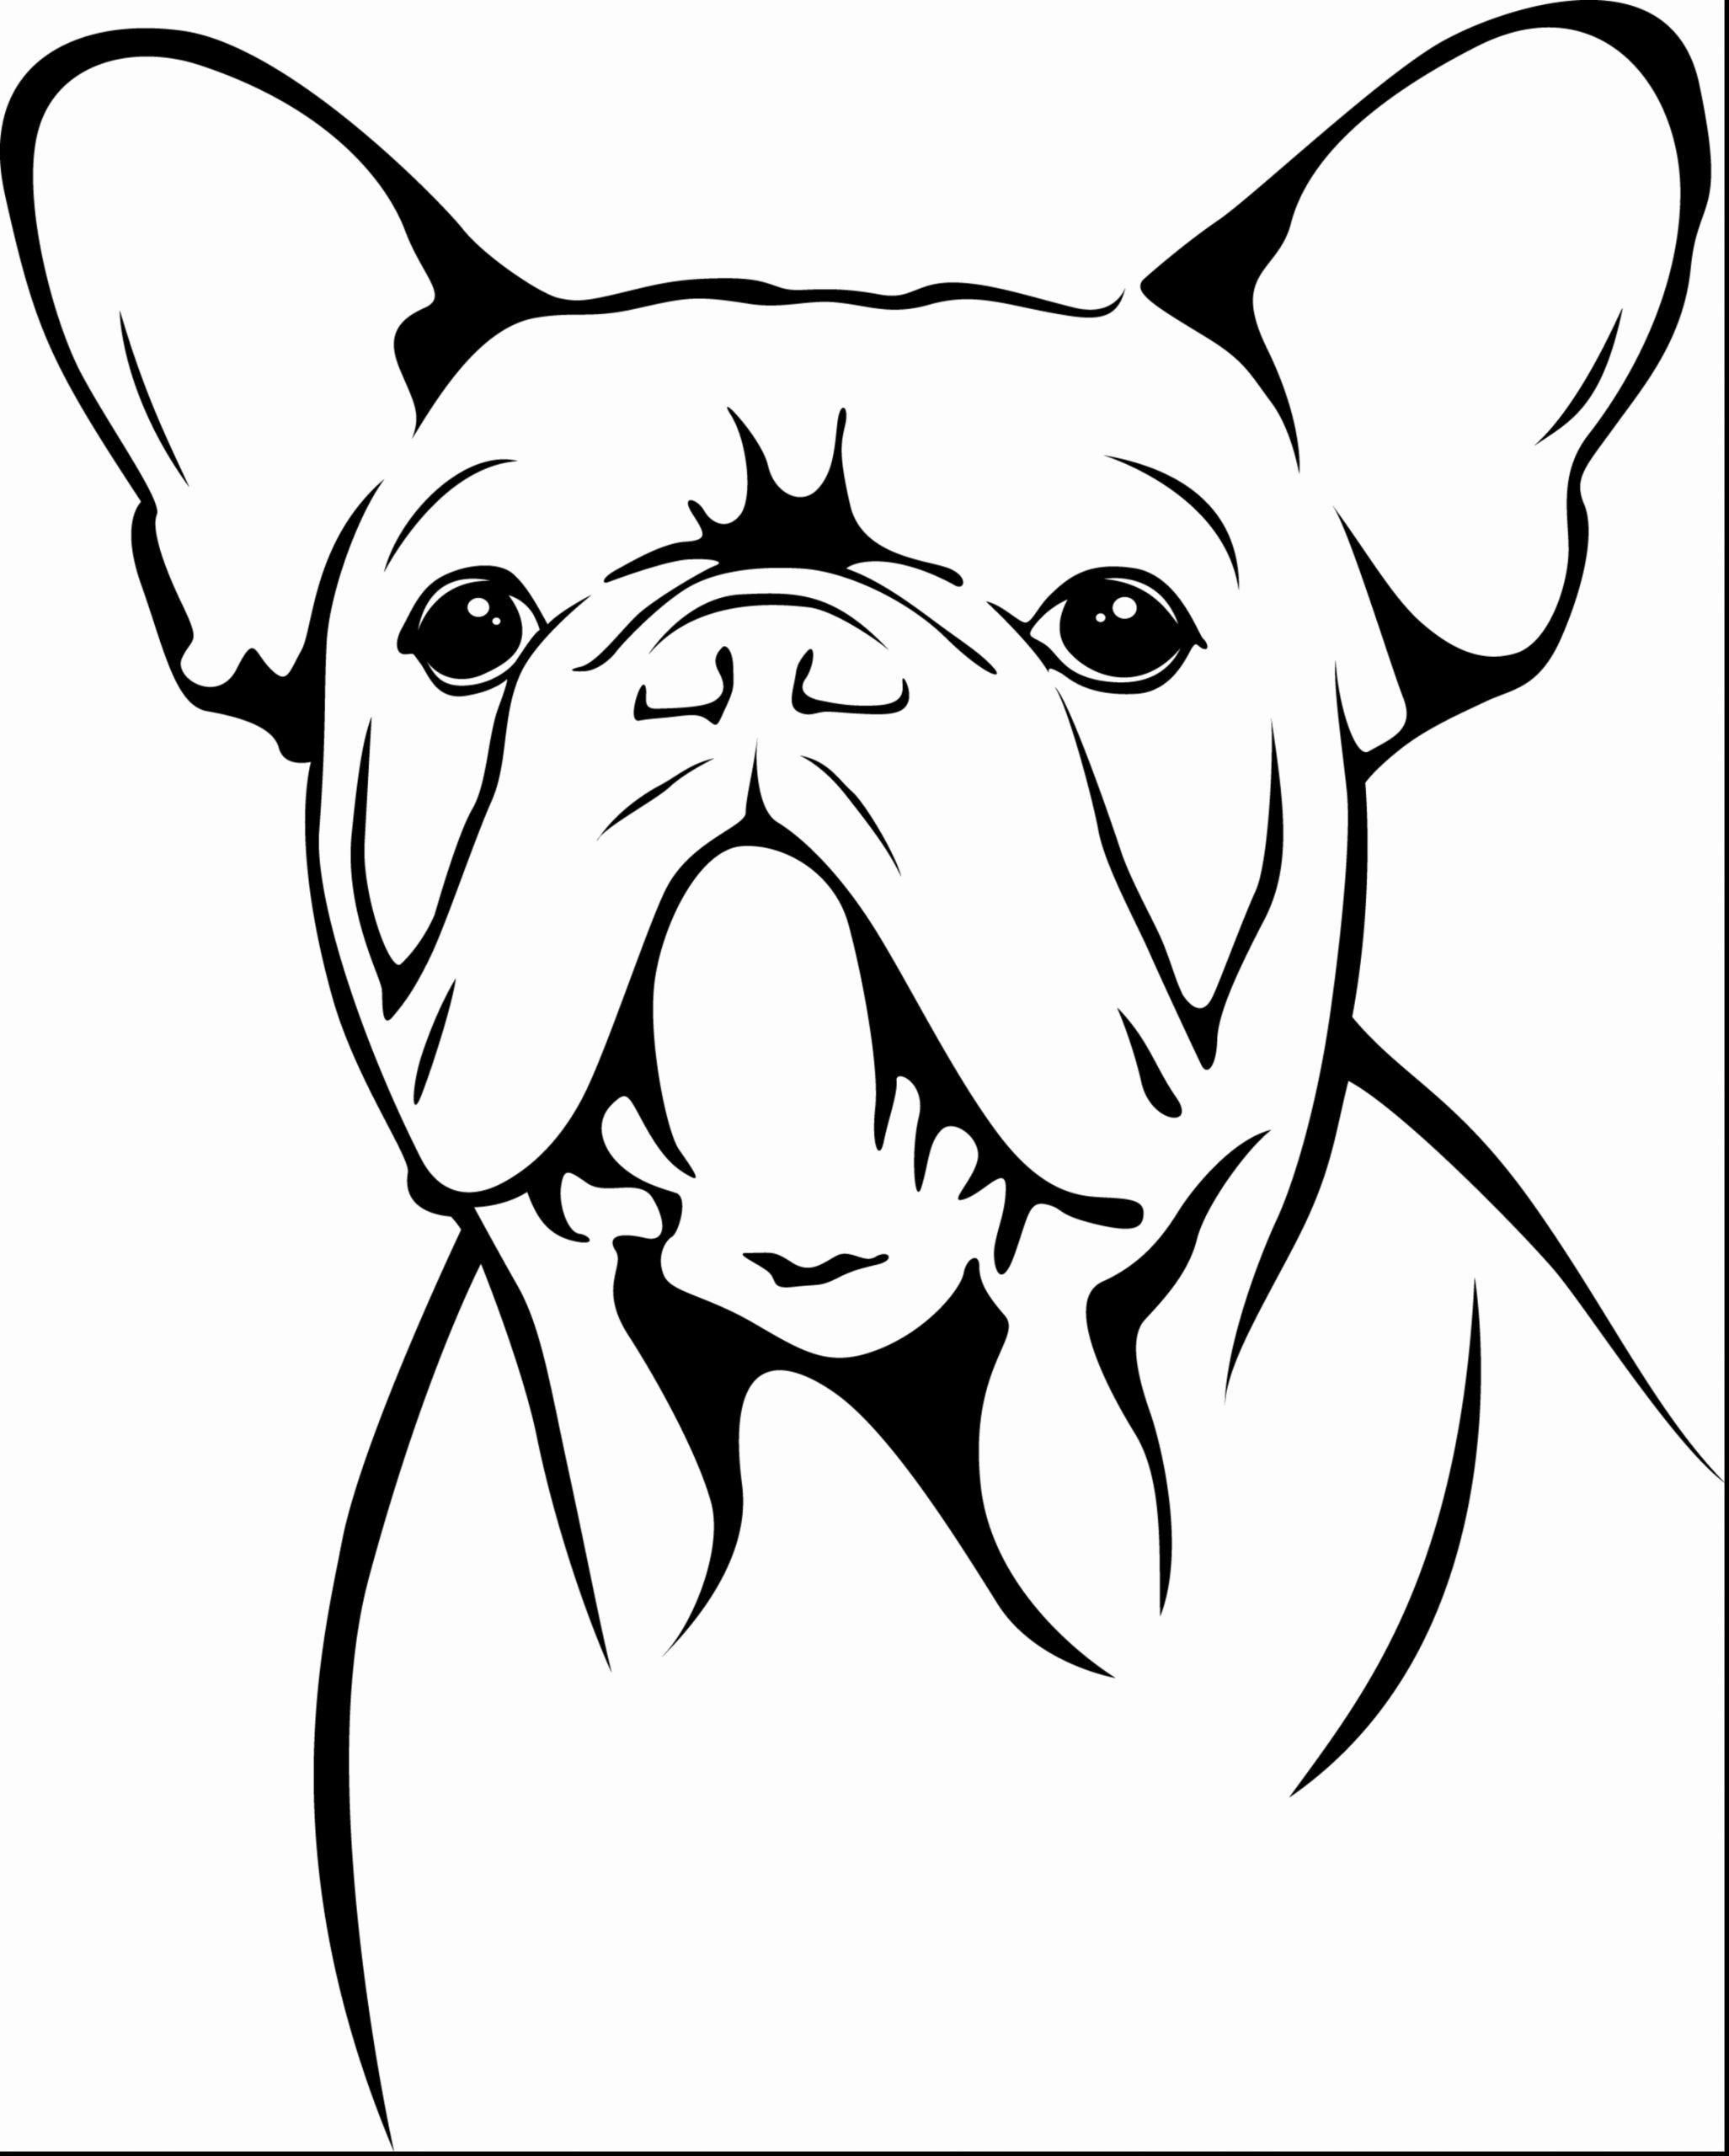 Bull Dog Coloring Page Beautiful American Bulldog Drawing At Getdrawings Dog Coloring Page Animal Coloring Pages Puppy Coloring Pages